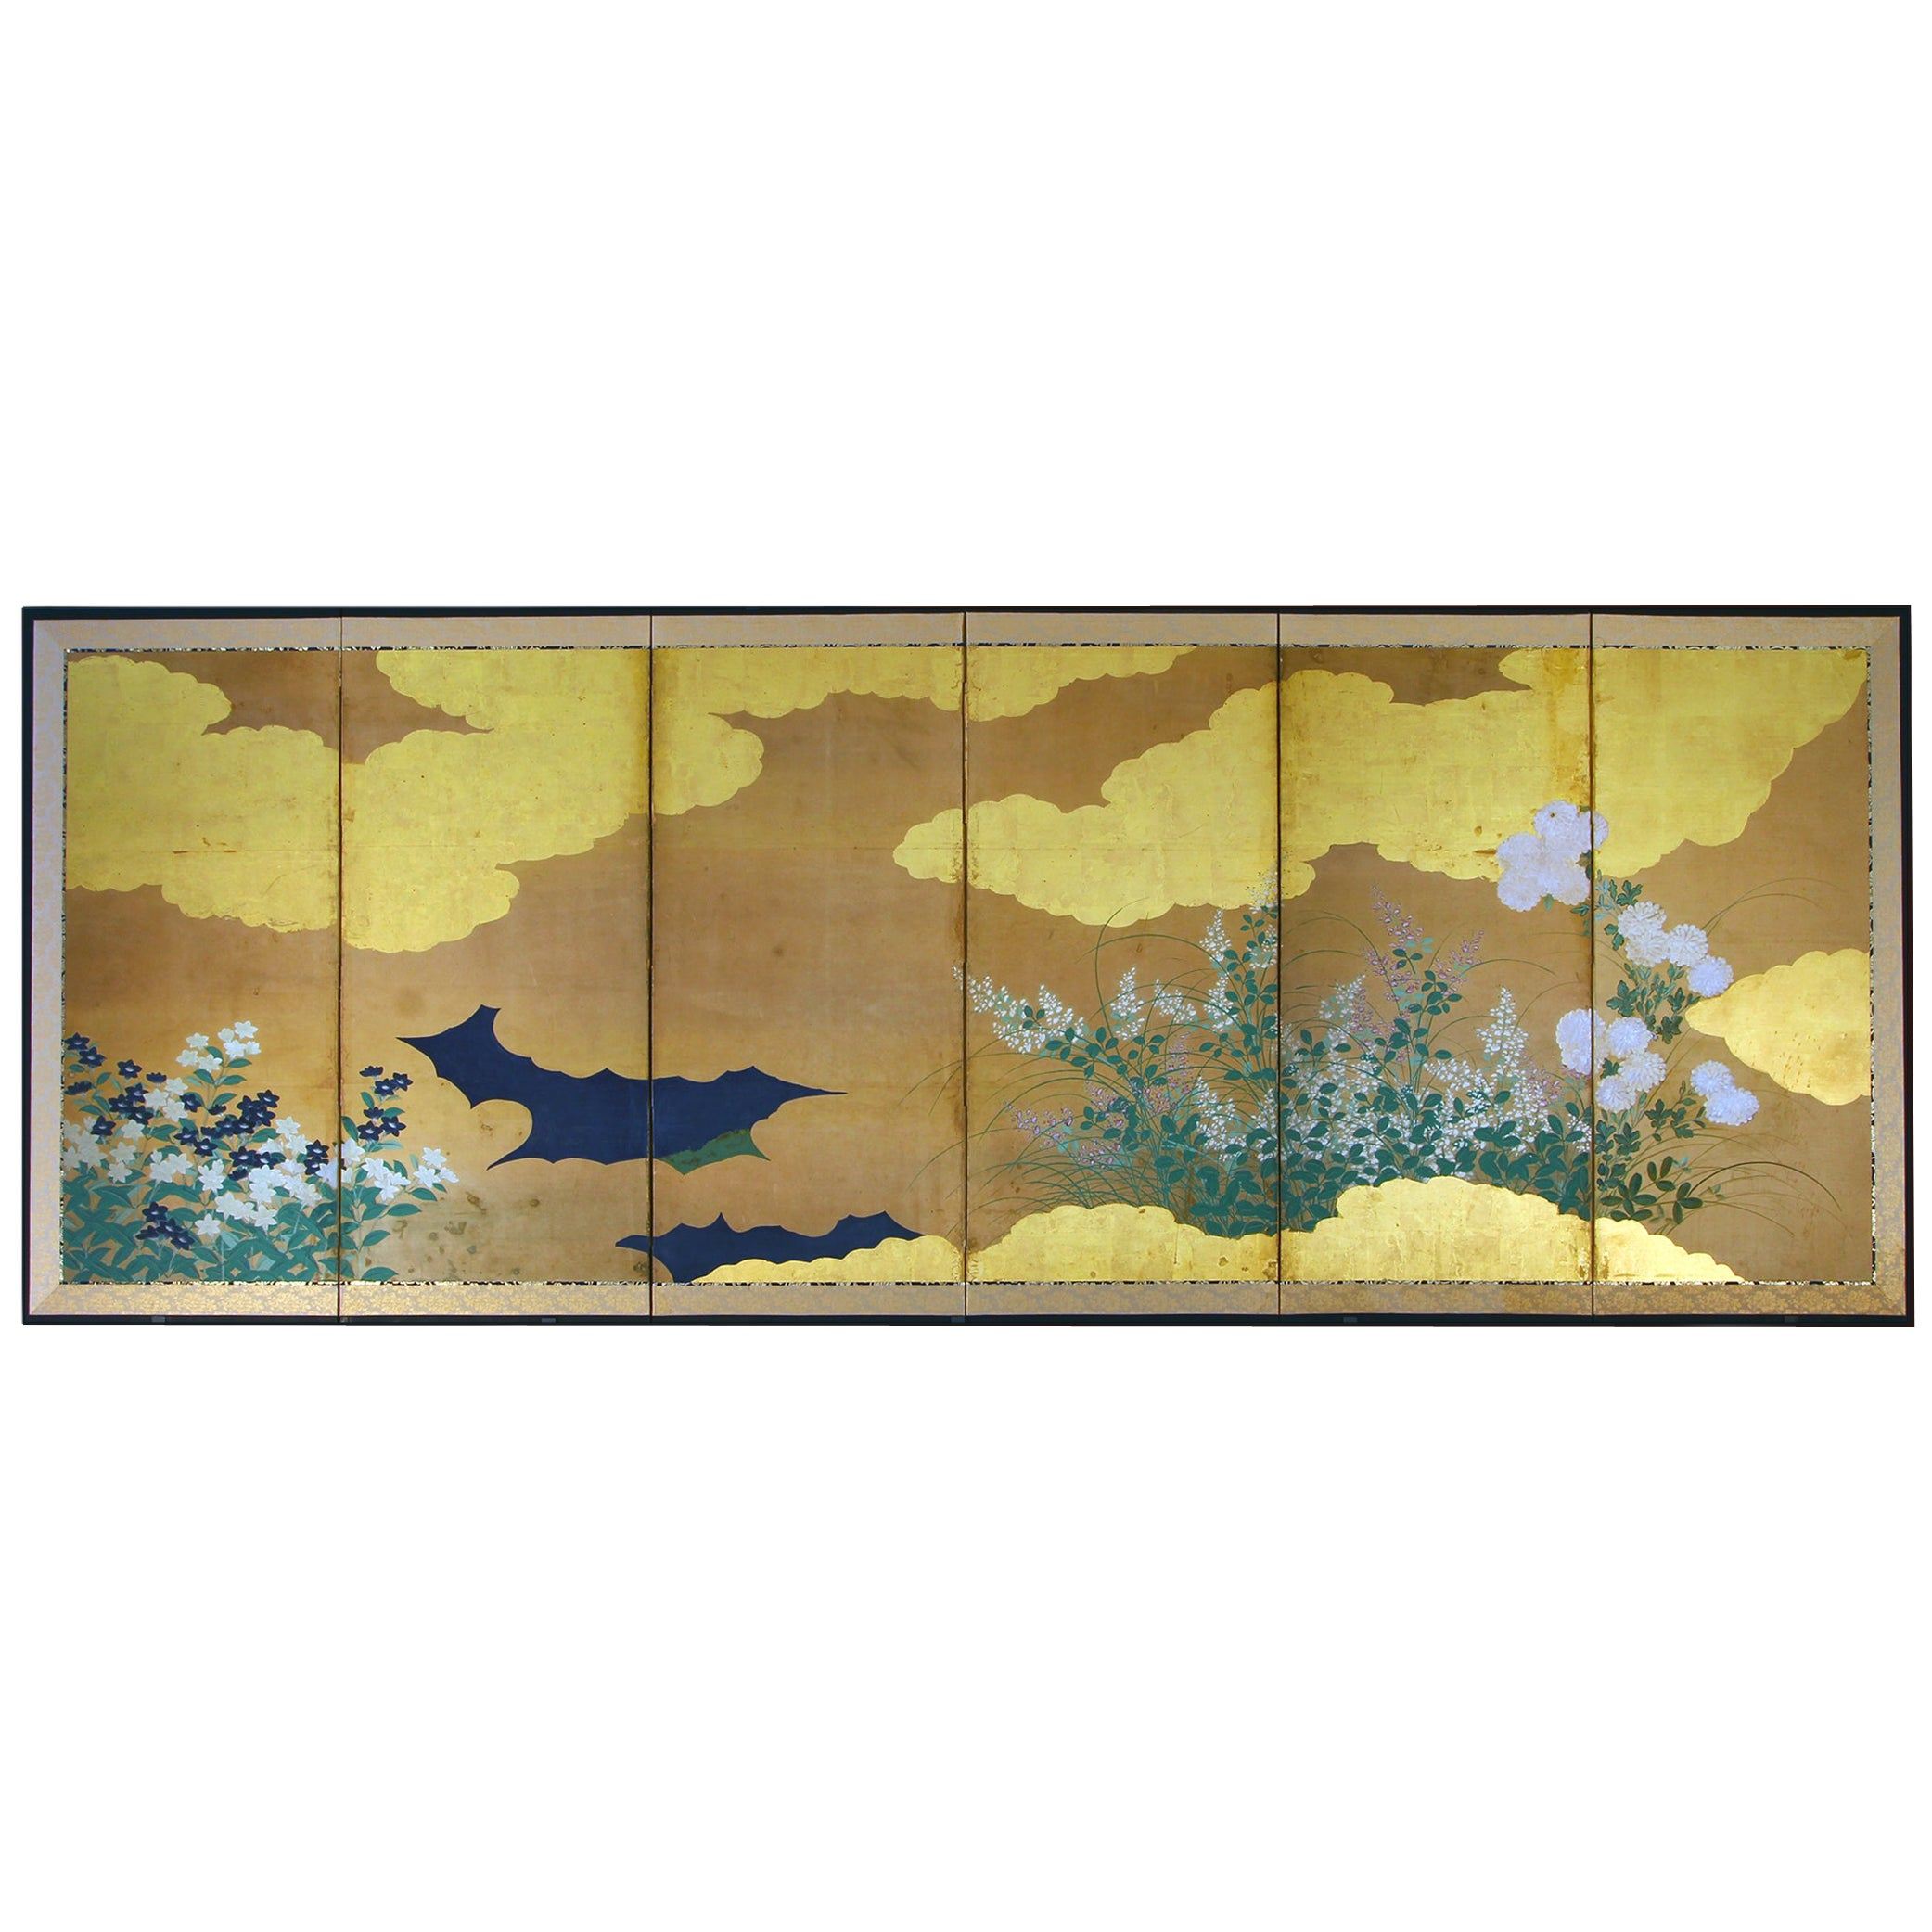 Edo Period 19th Century Japanese Folding Screen Six Panels Flowers on Gold Leaf